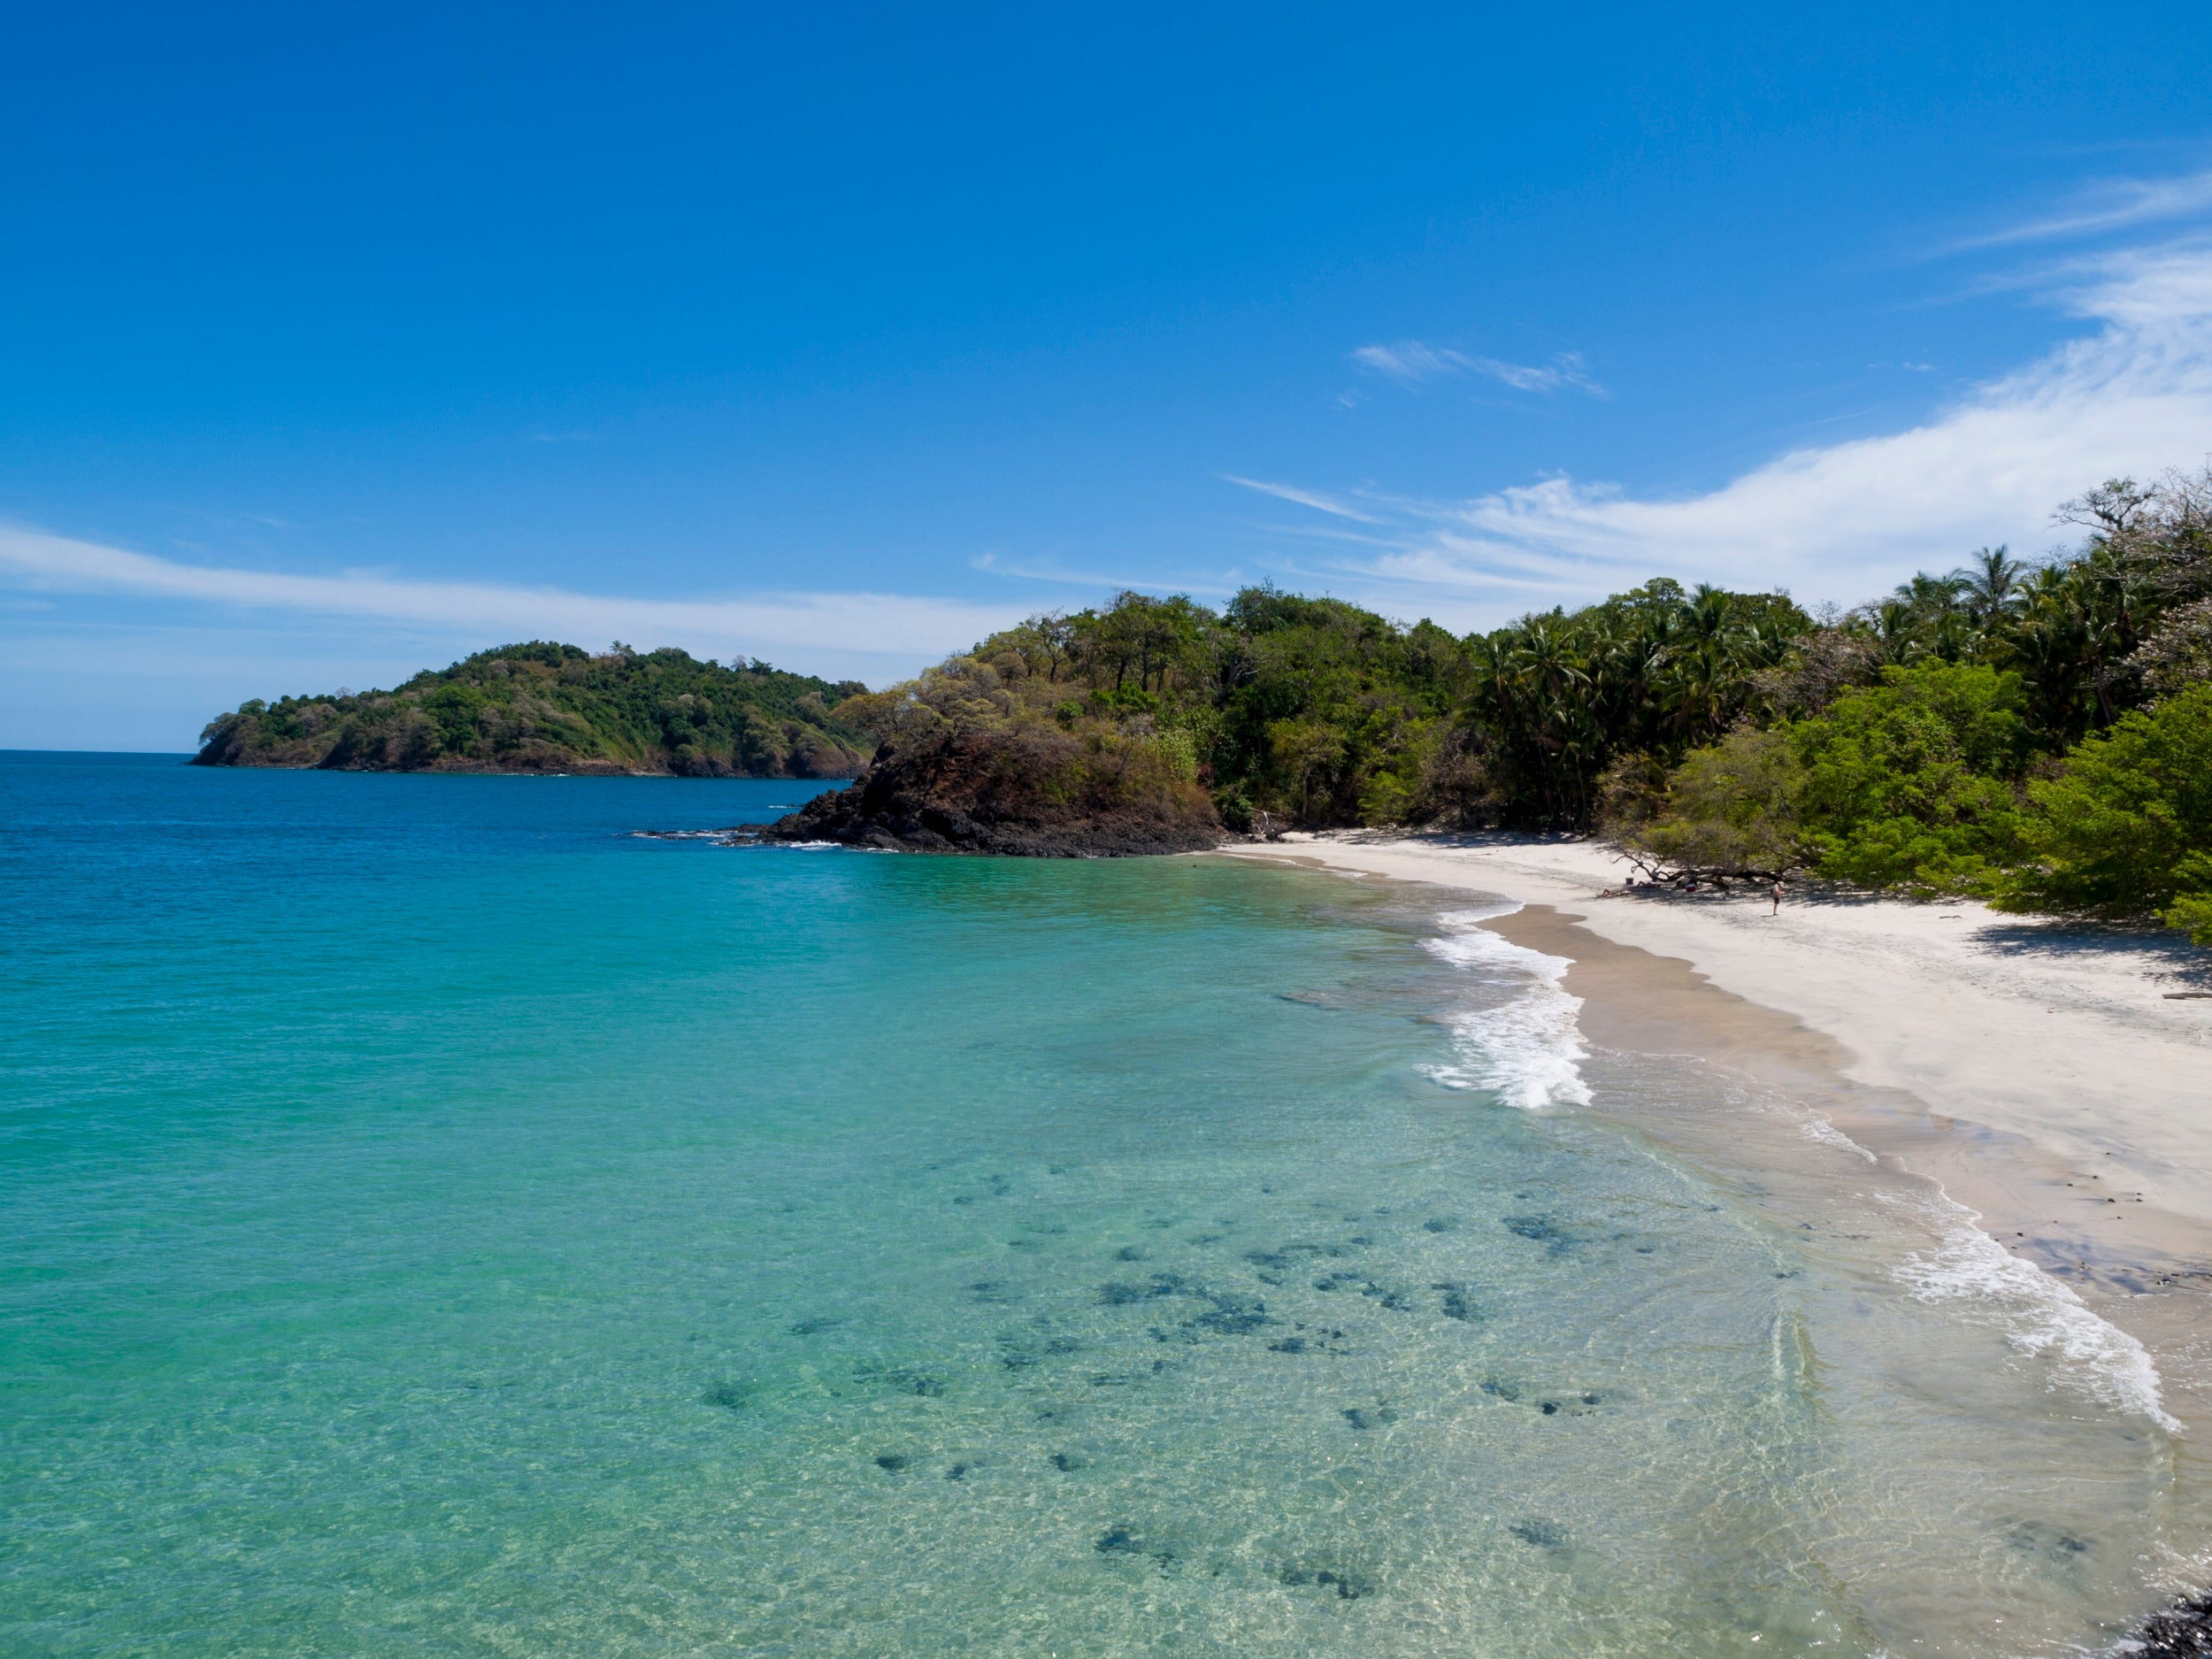 Panama: New eco-friendly resorts open on the country's Pacific coast